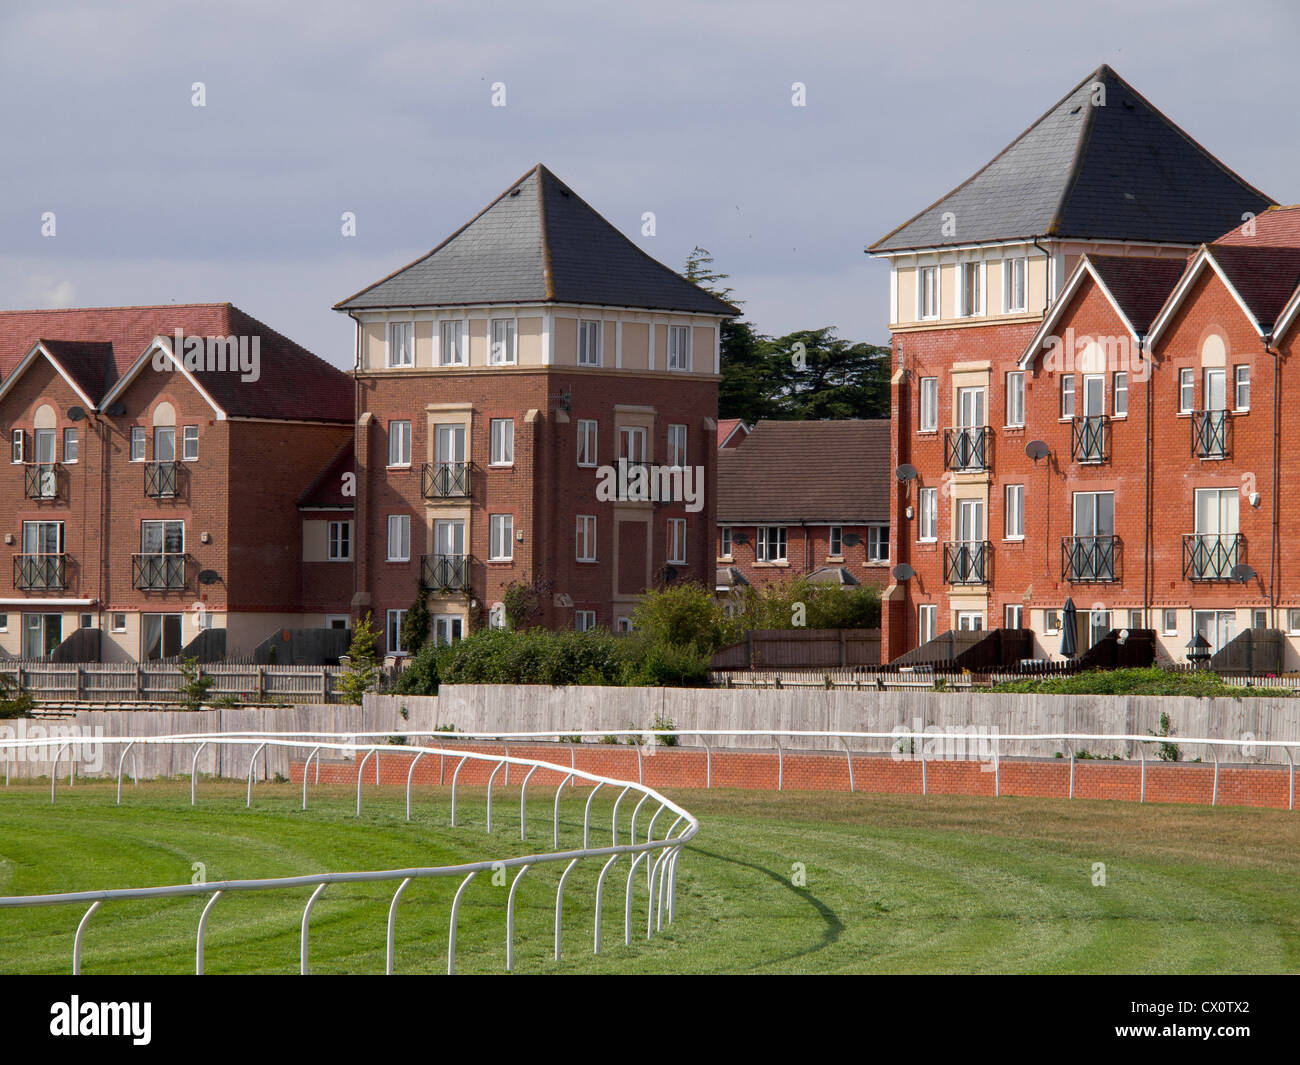 horse race track and buildings - Stock Image